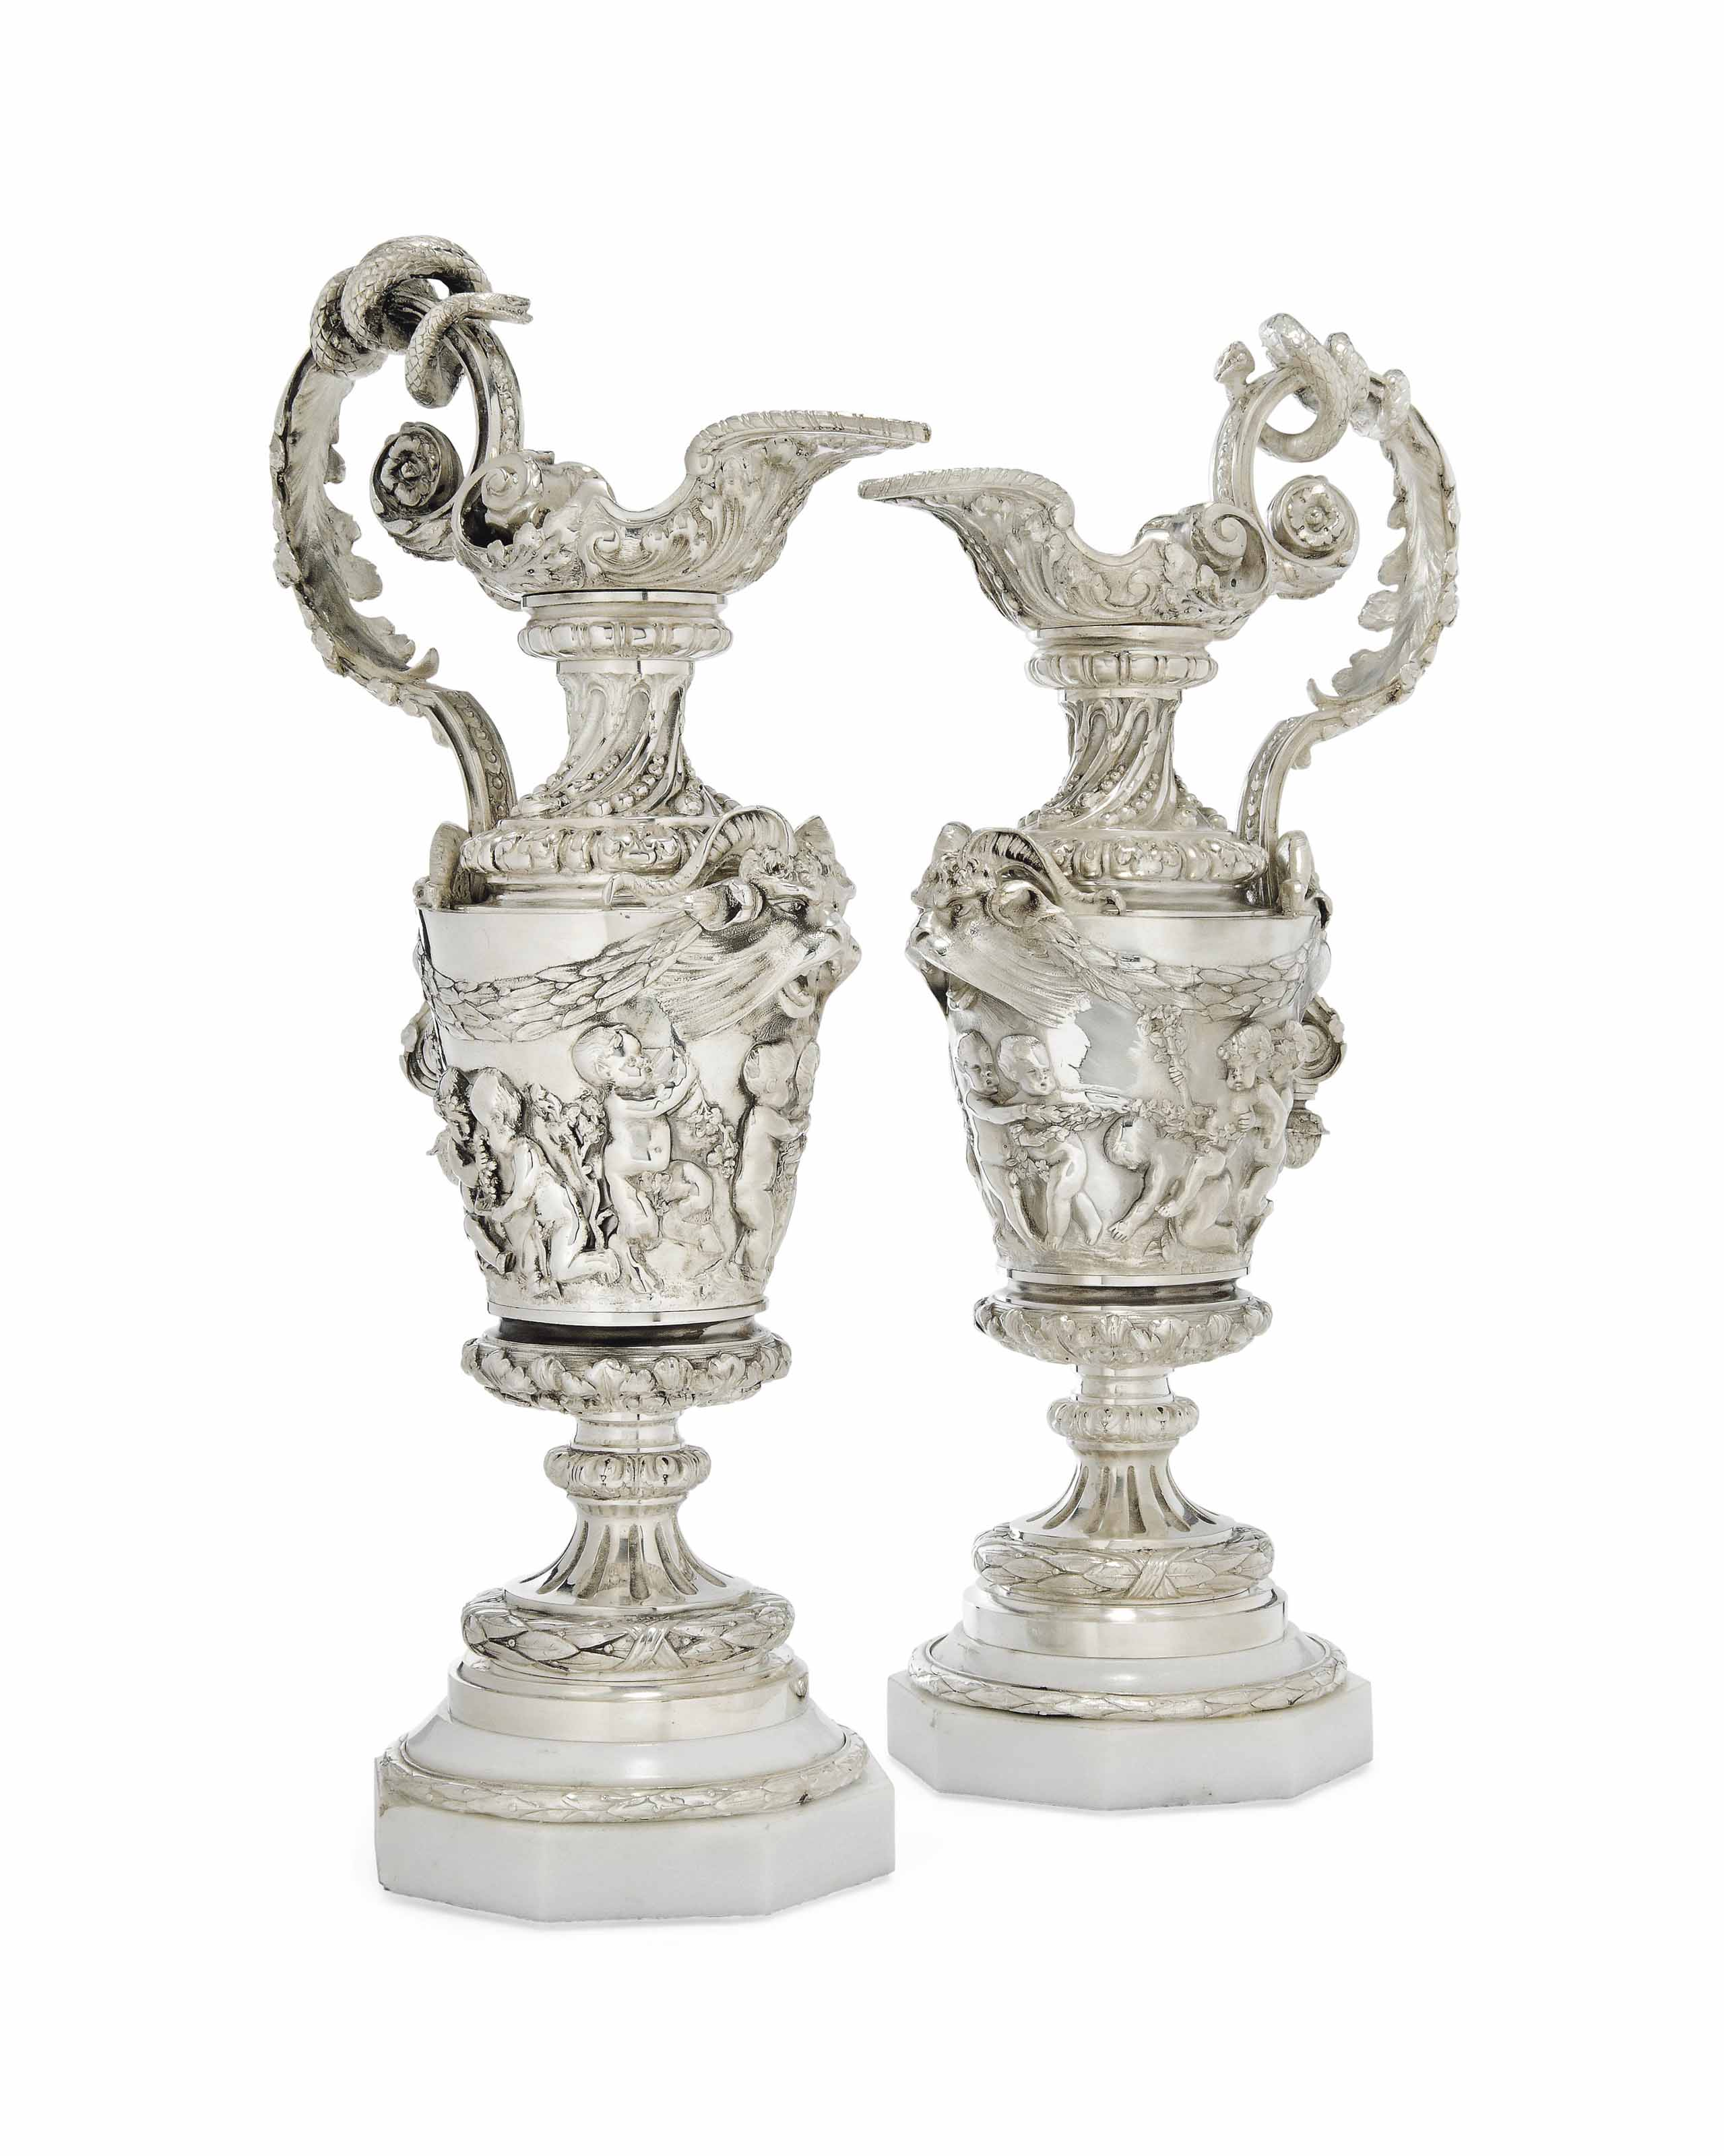 A PAIR OF SILVER-PLATED VASES